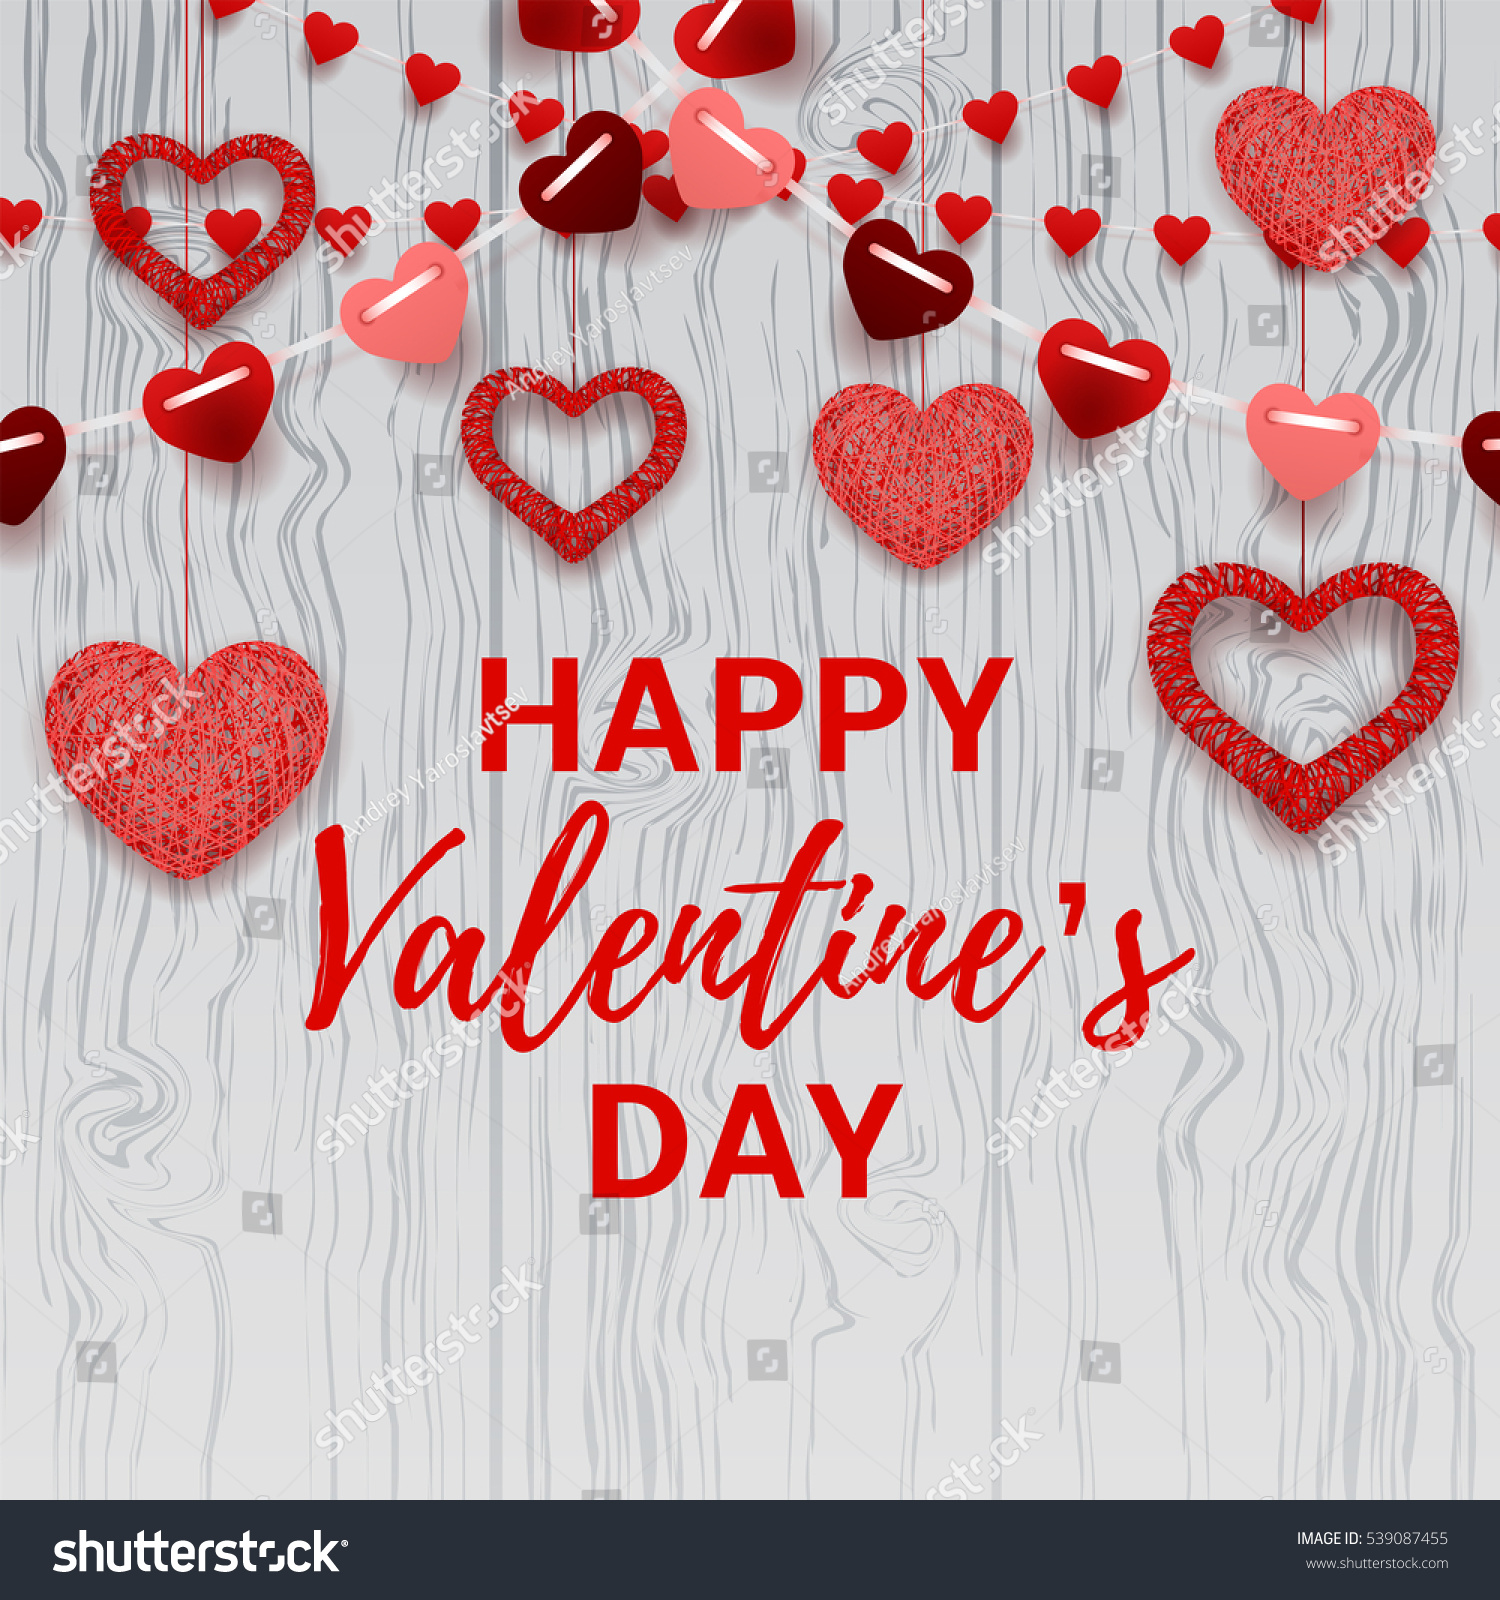 Happy Valentines Day Card Romantic Composition Stock Vector Royalty Free 539087455